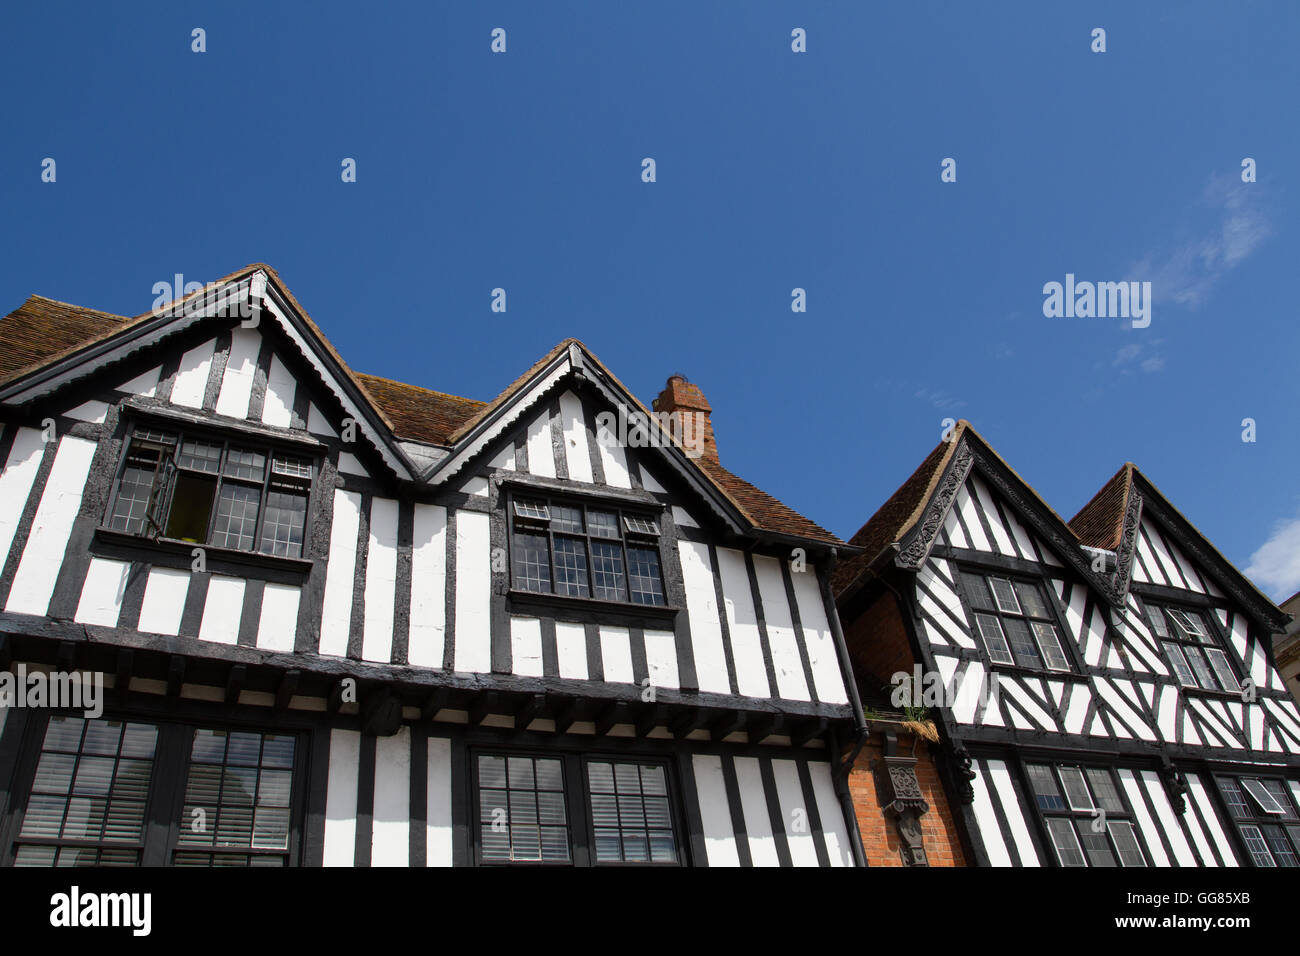 A row of Tudor style houses in England with traditional black and white facades under a clear, blue sky. - Stock Image